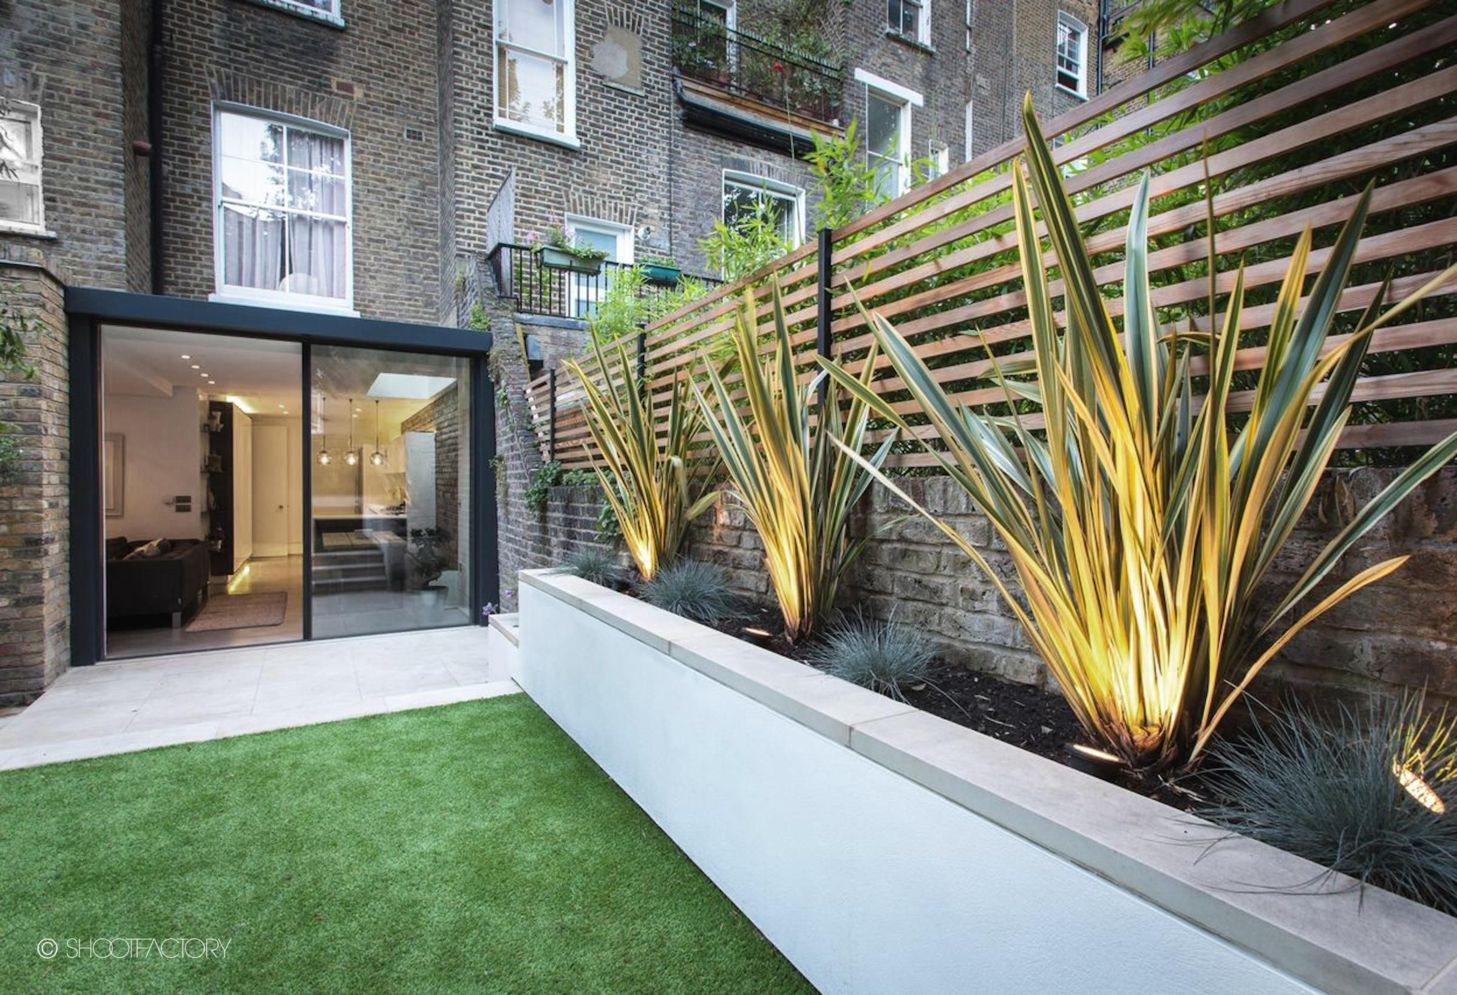 Beautiful garden lighting ideas with ground level ambient light giving luxurious resorts look Image 23